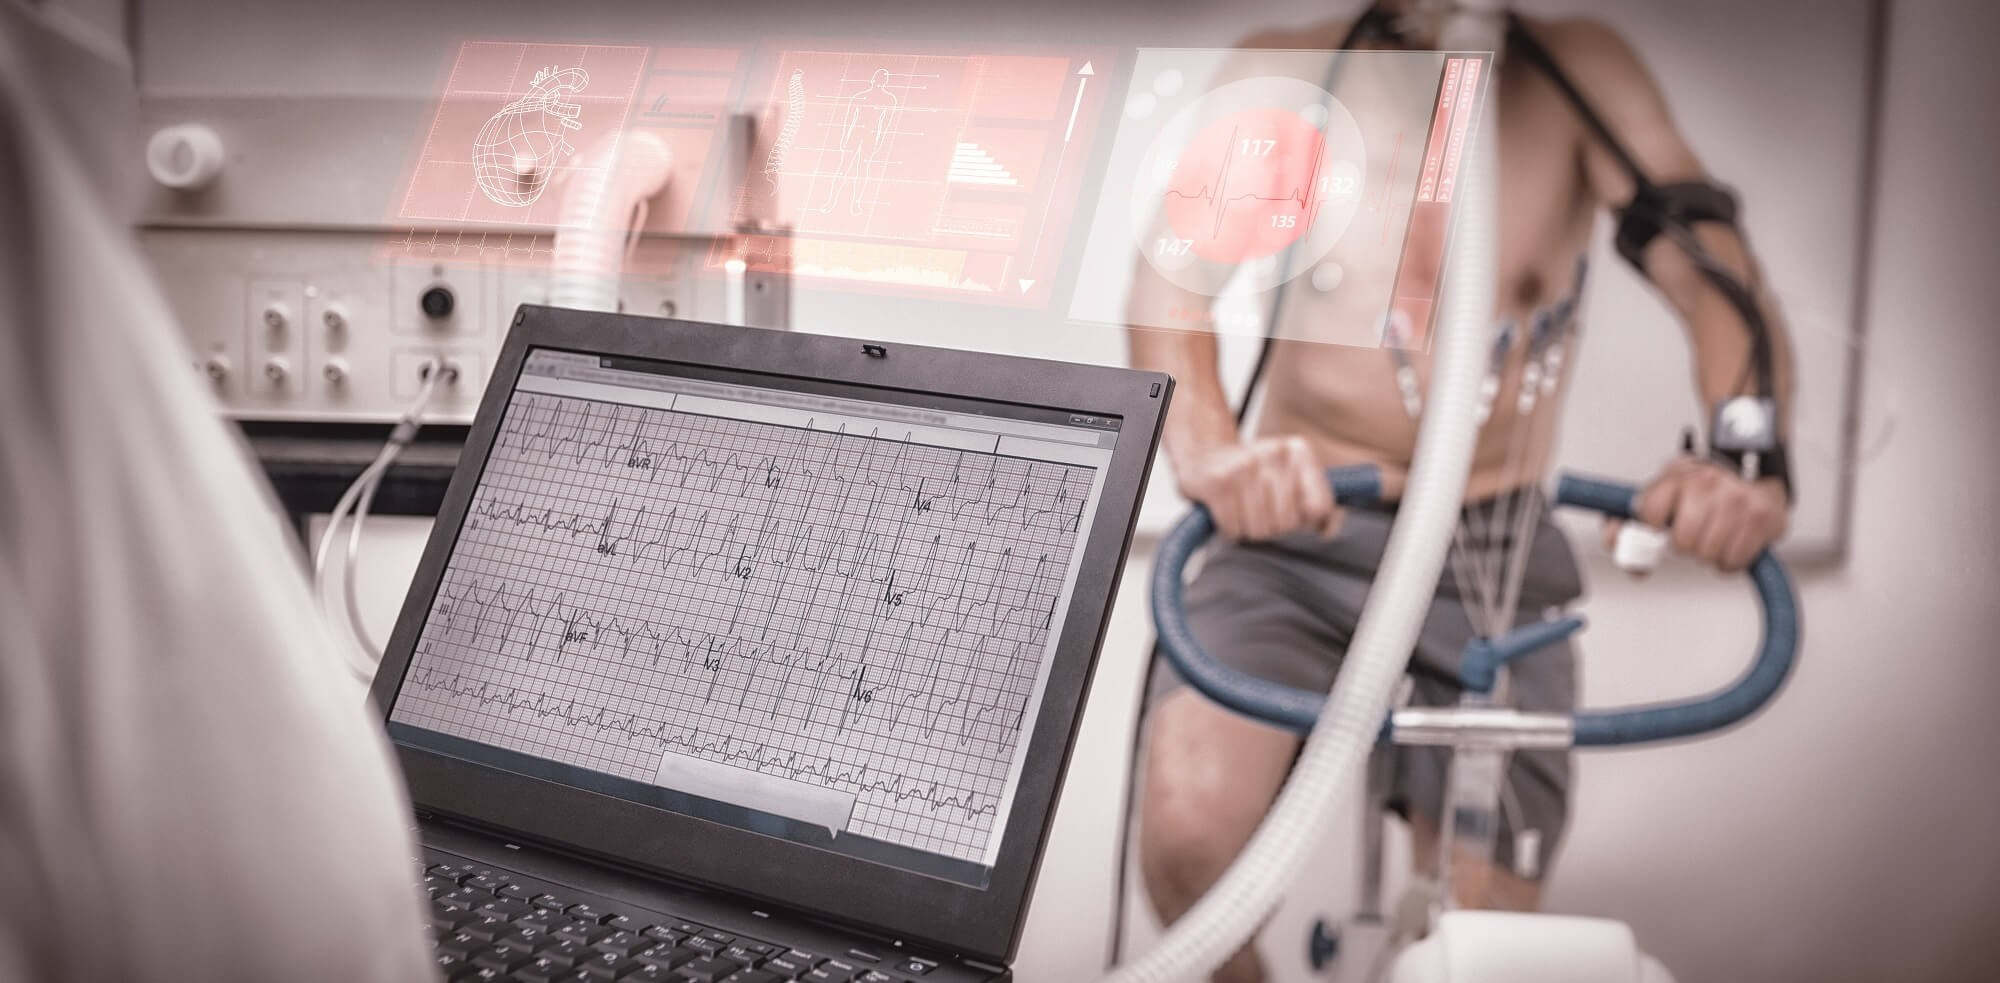 Combinations of VO2 and change in CI during follow-up visits are valuable prognosis markers in low-risk patients with PAH.